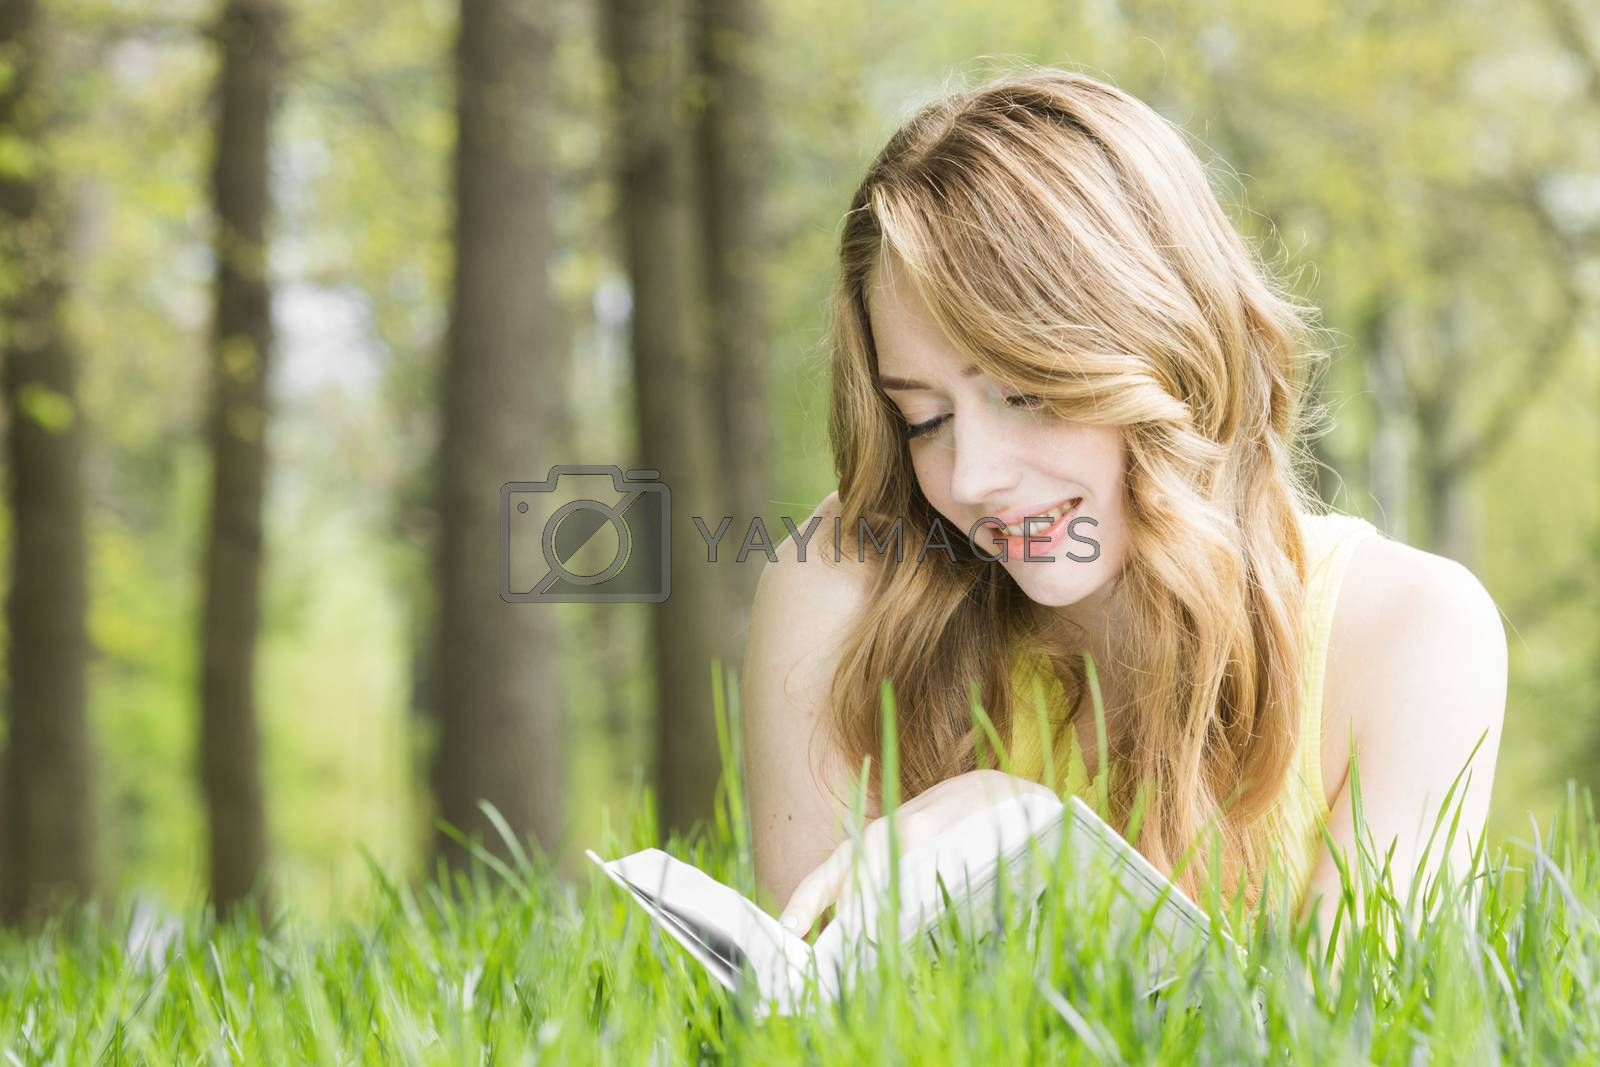 Young beautiful woman lays on green grass field and reads book, spring exam concept, copy space for text